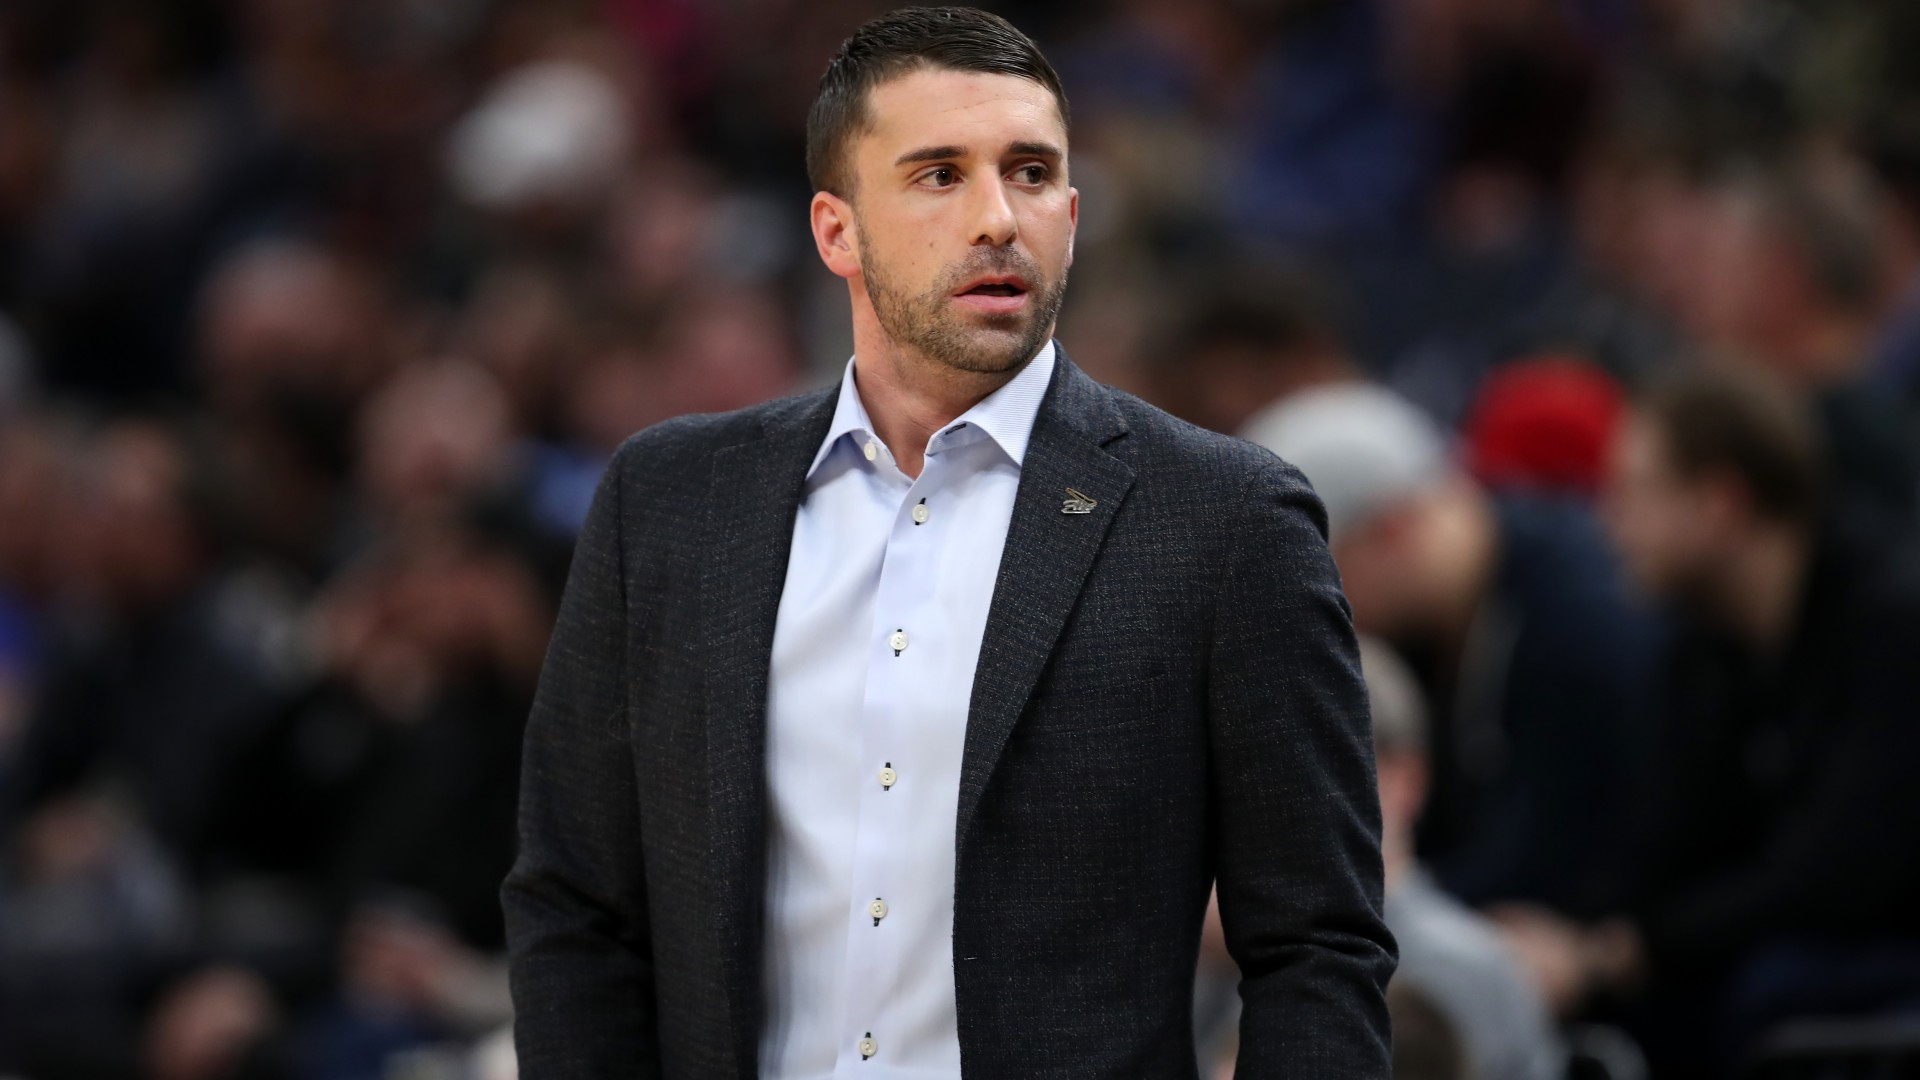 The Minnesota Timberwolves dismissed Ryan Saunders following Sunday's 103-99 loss to the New York Knicks.